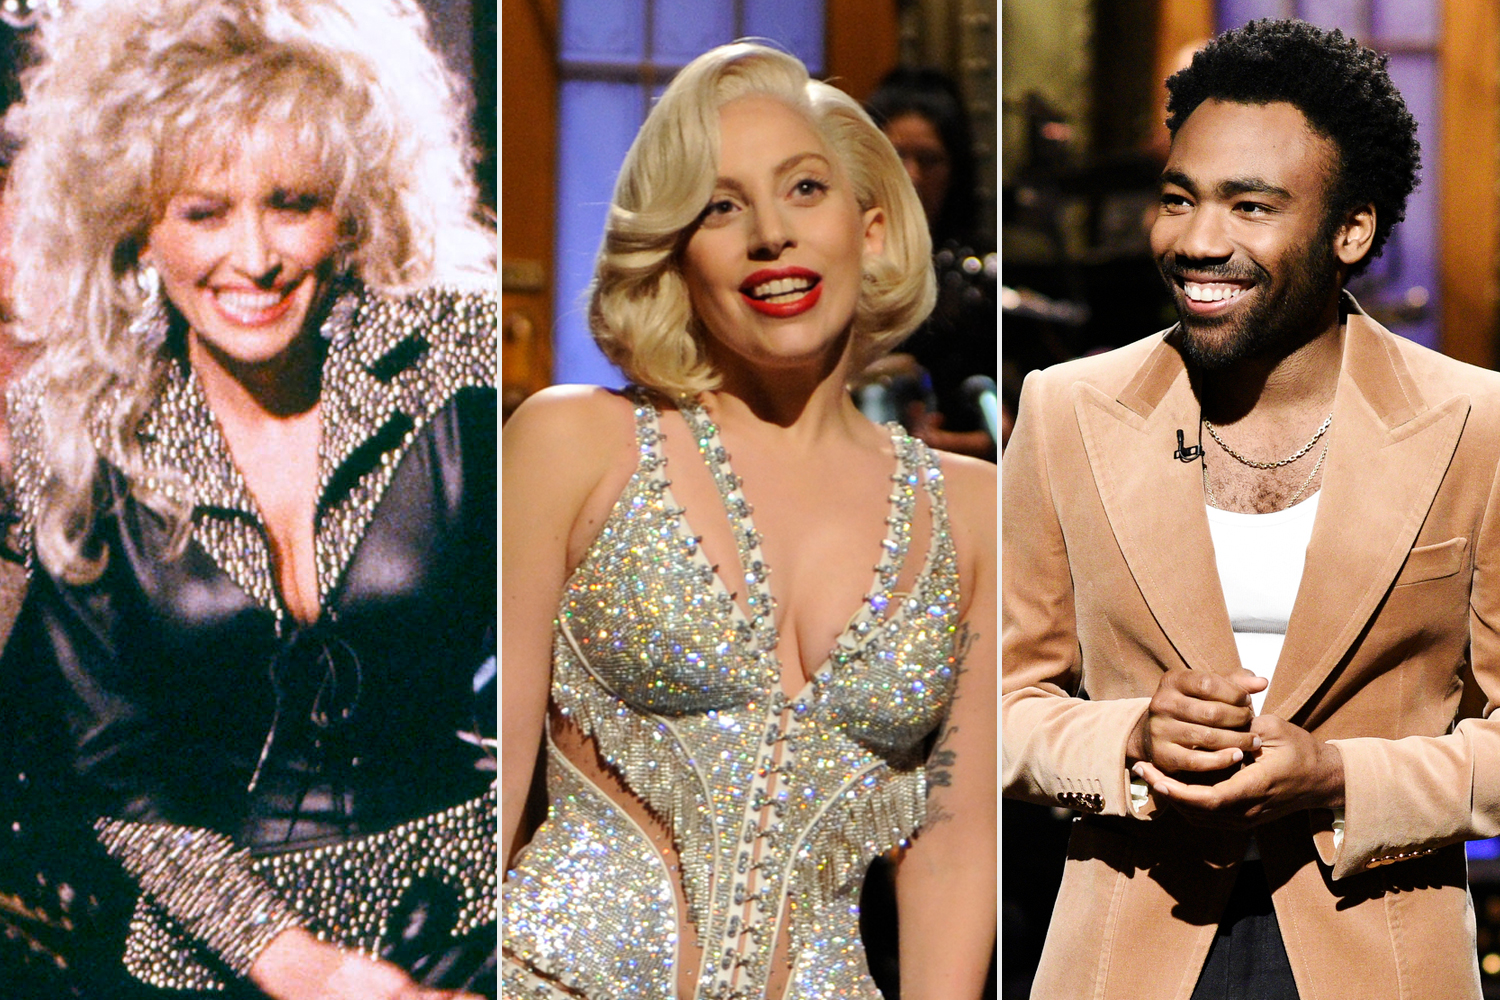 Dolly Parton, Lady Gaga, Donald Glover